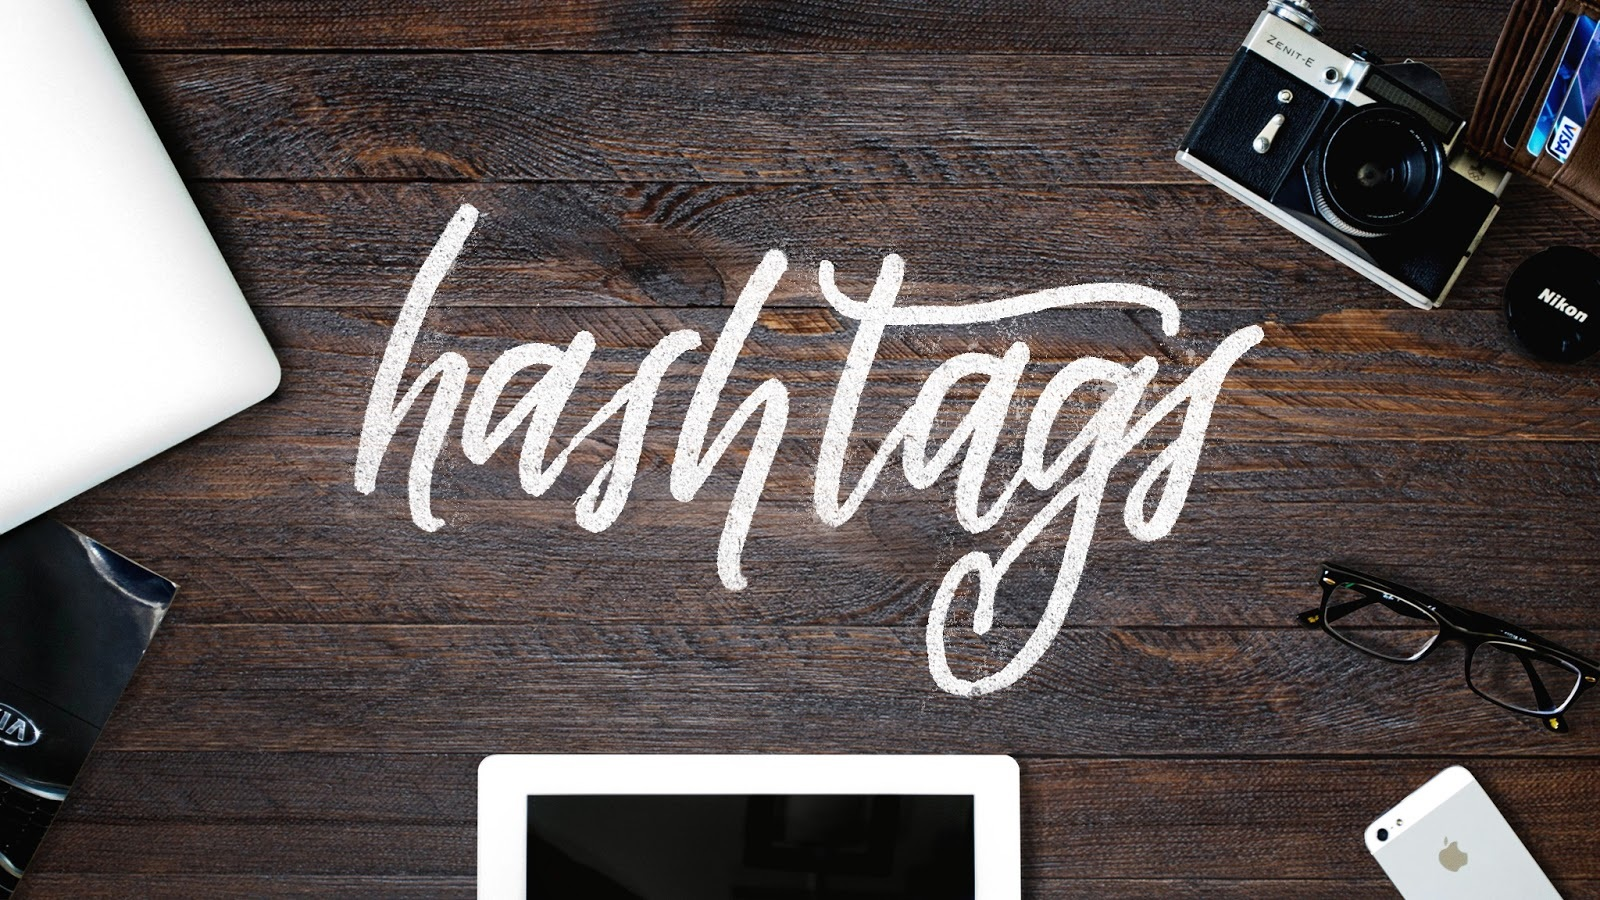 Quotes Hashtags Tips-How To Make Use Of hashtags And Quotes On Instagram